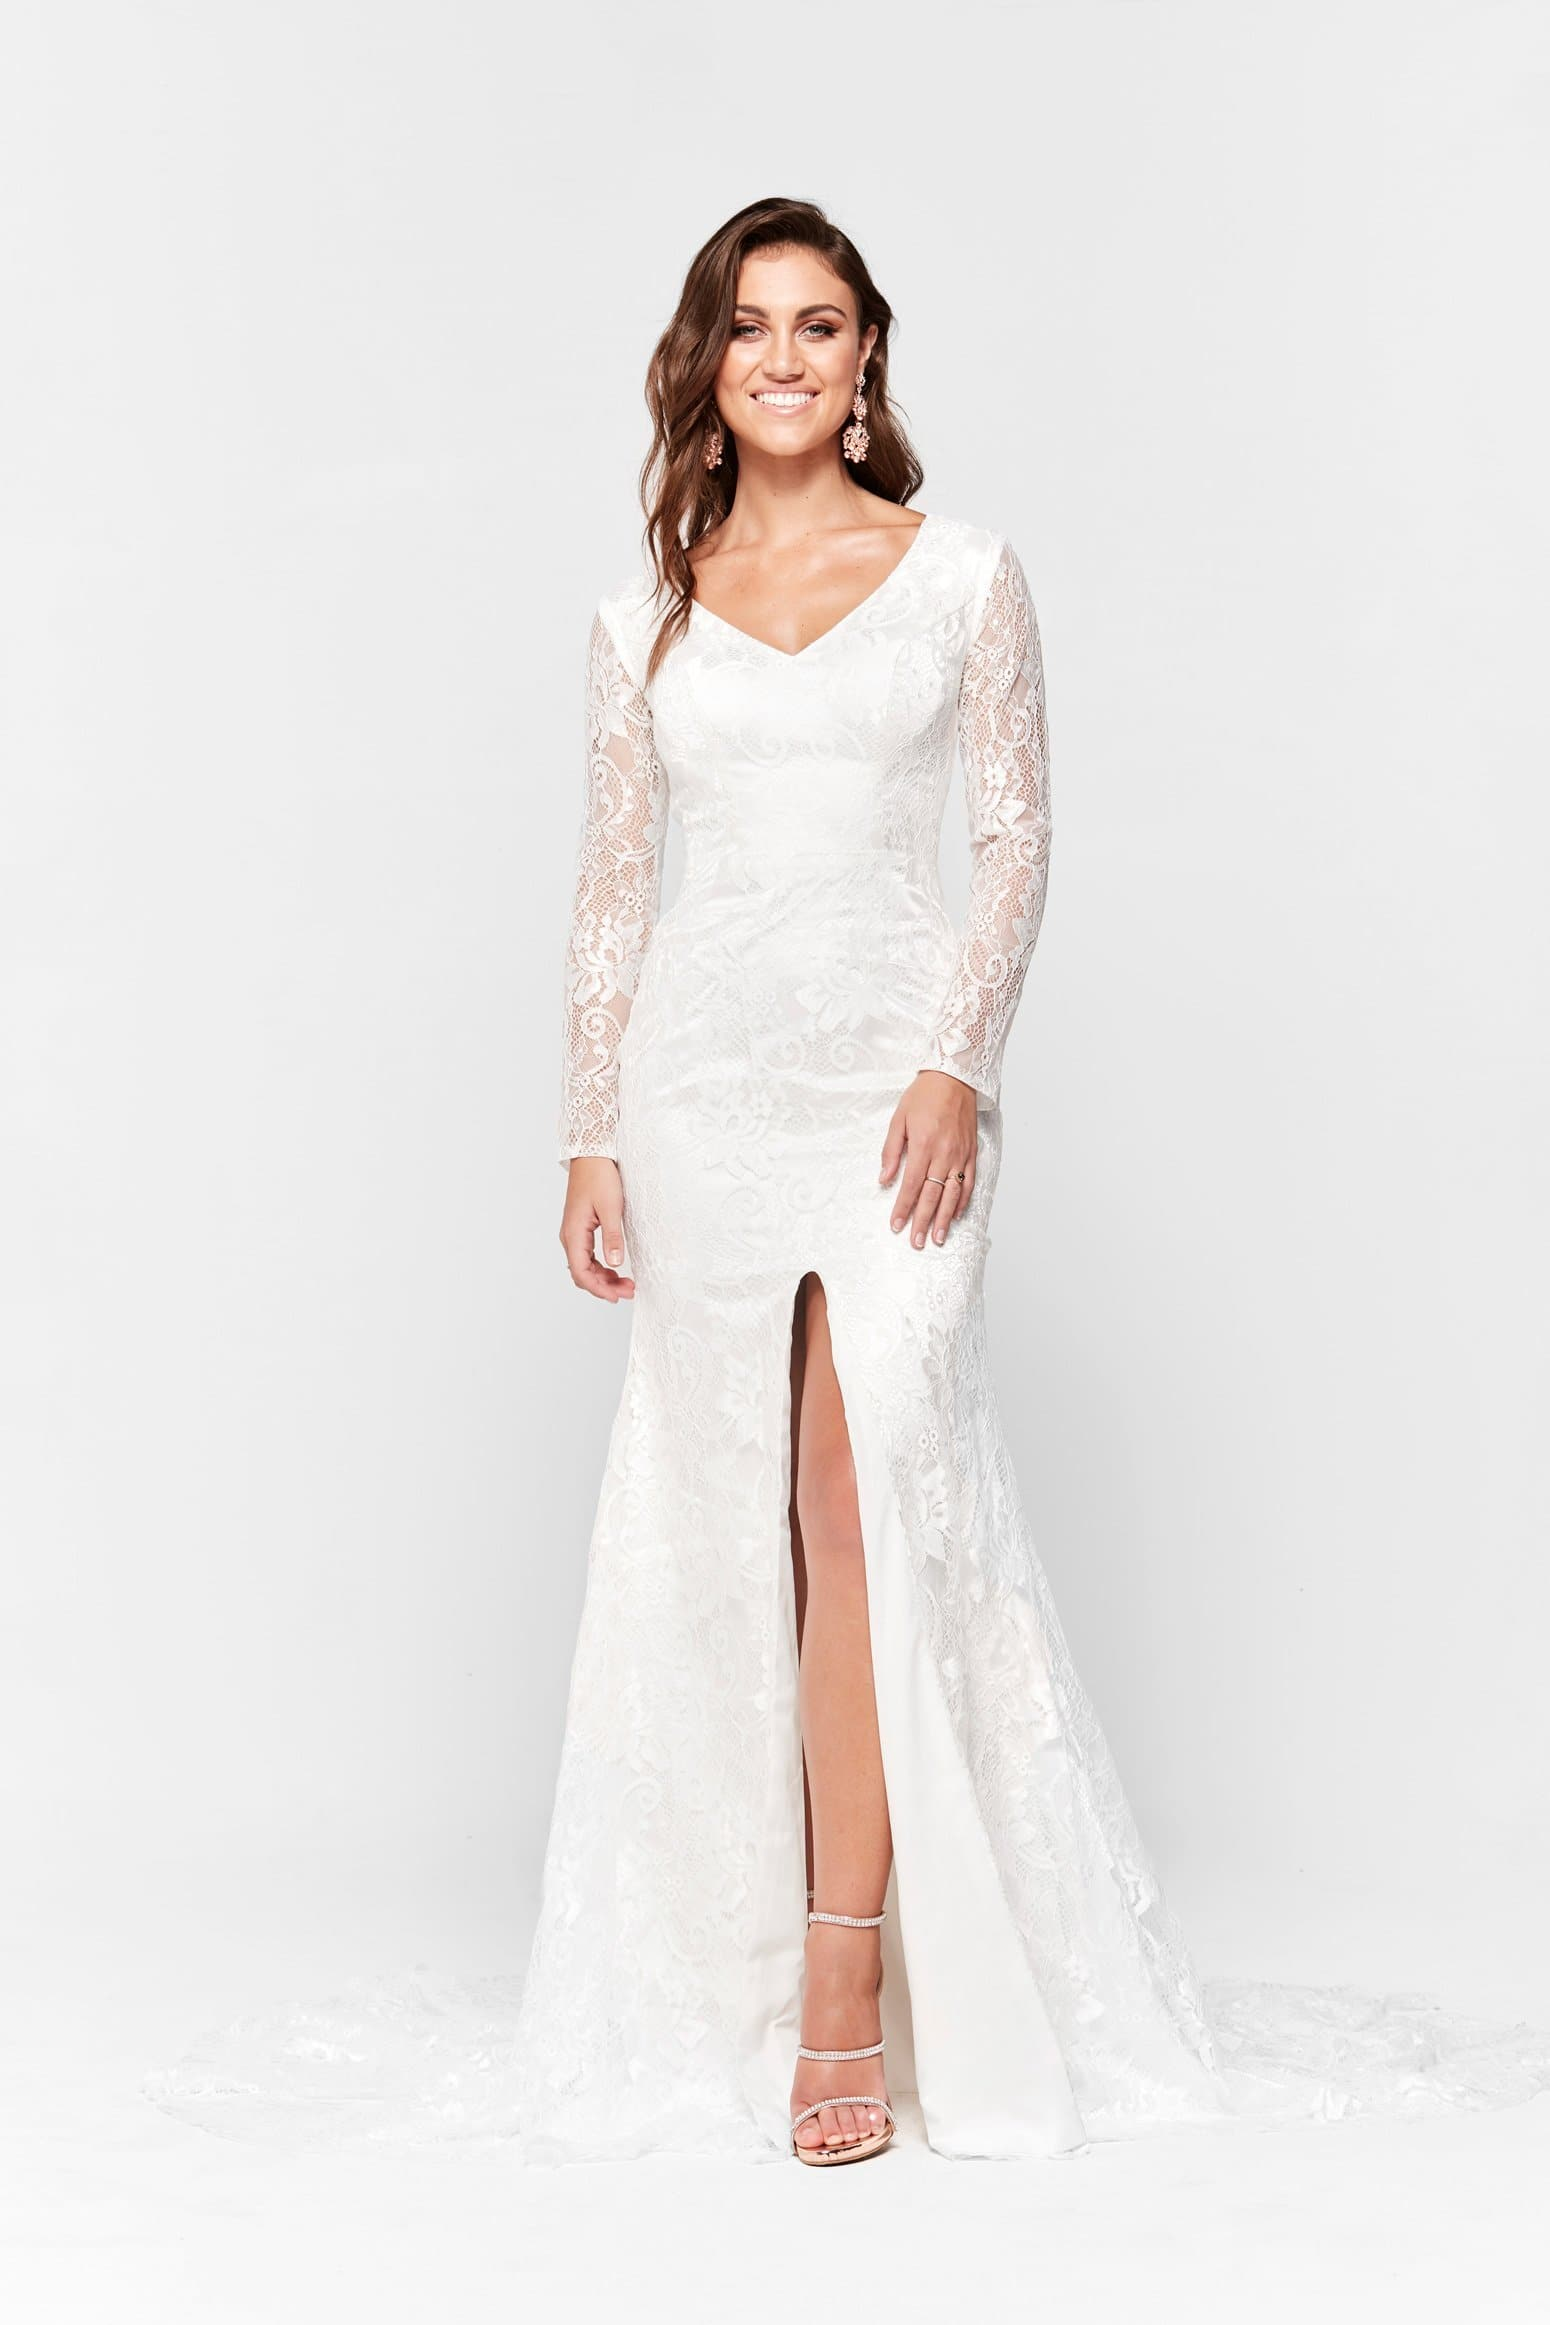 A&N Renee - Long Sleeve White Lace Gown with Mermaid Train – A&N ...